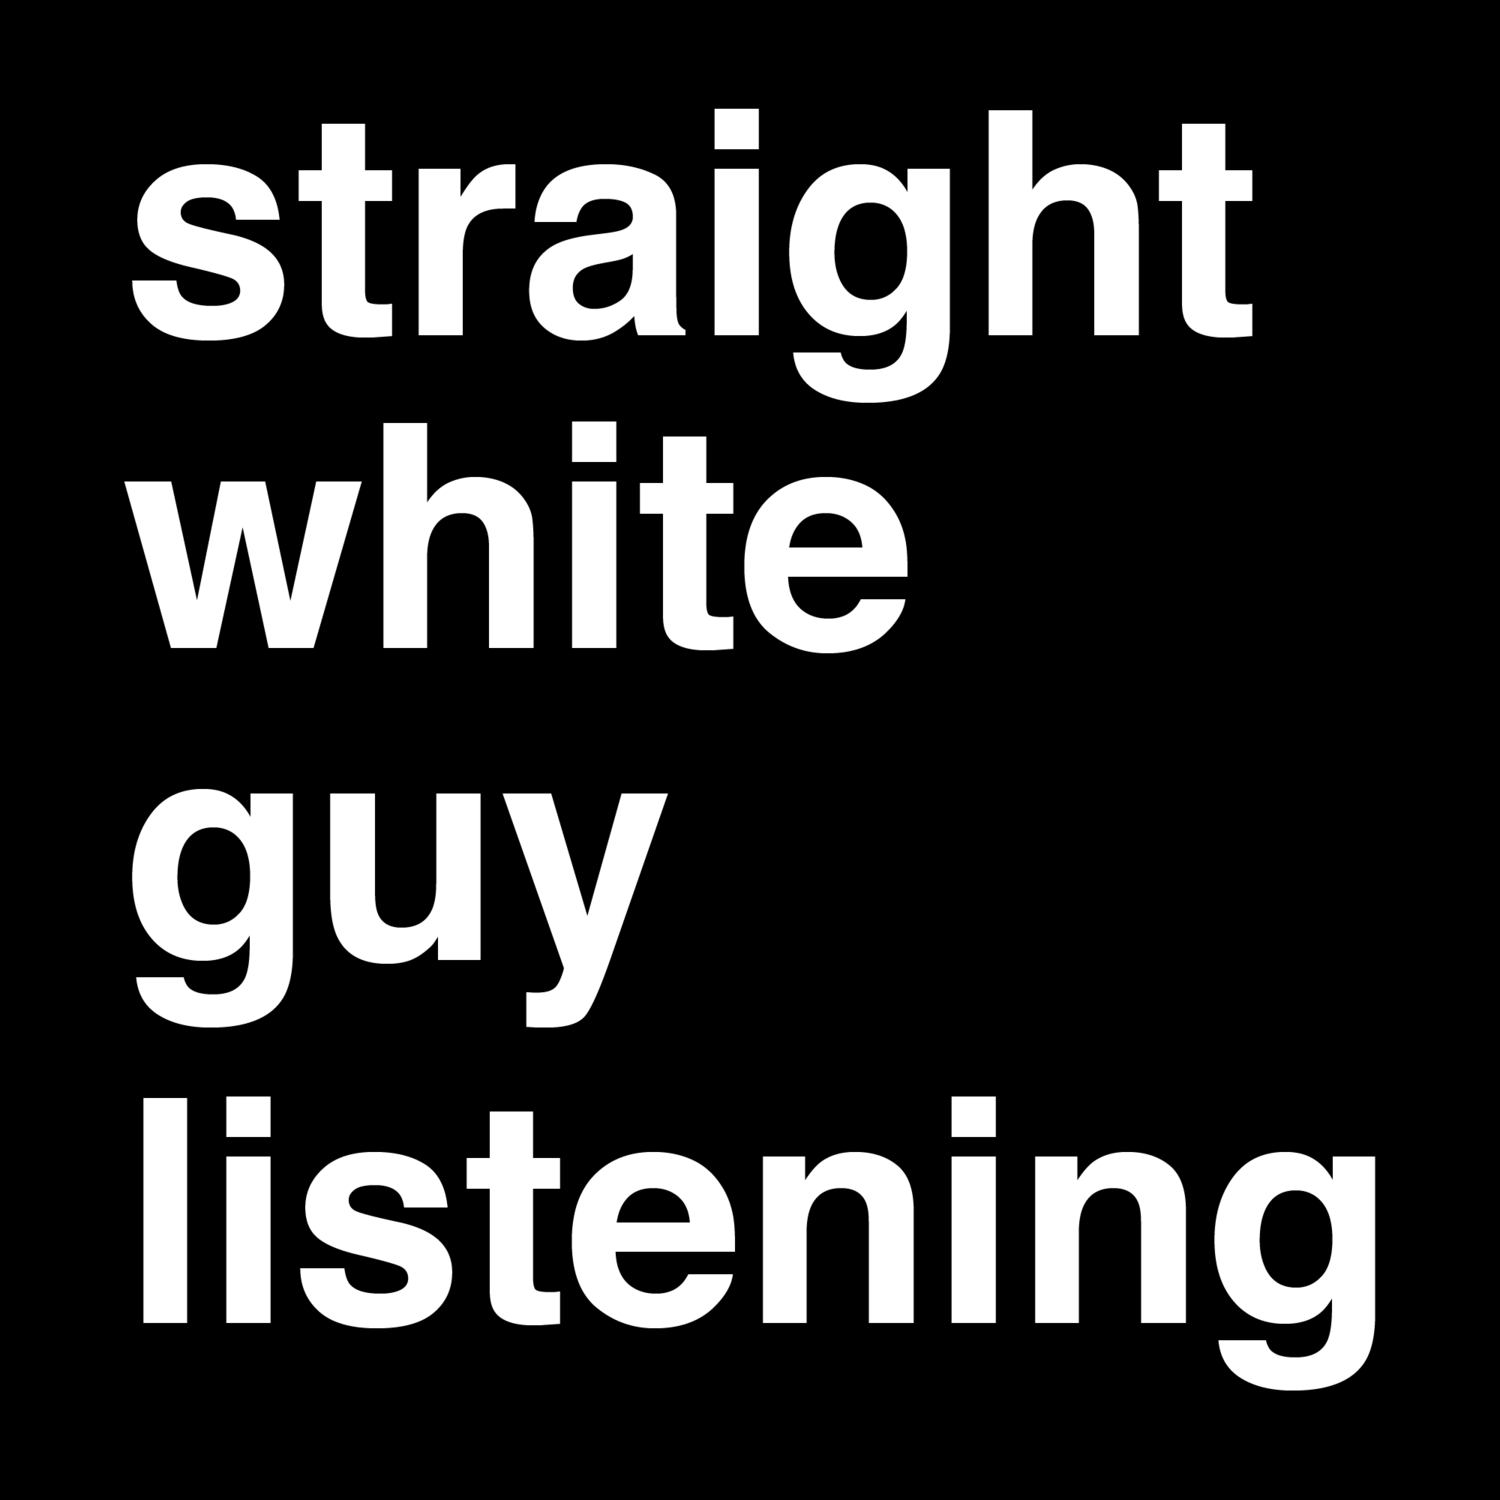 straight white guy listening